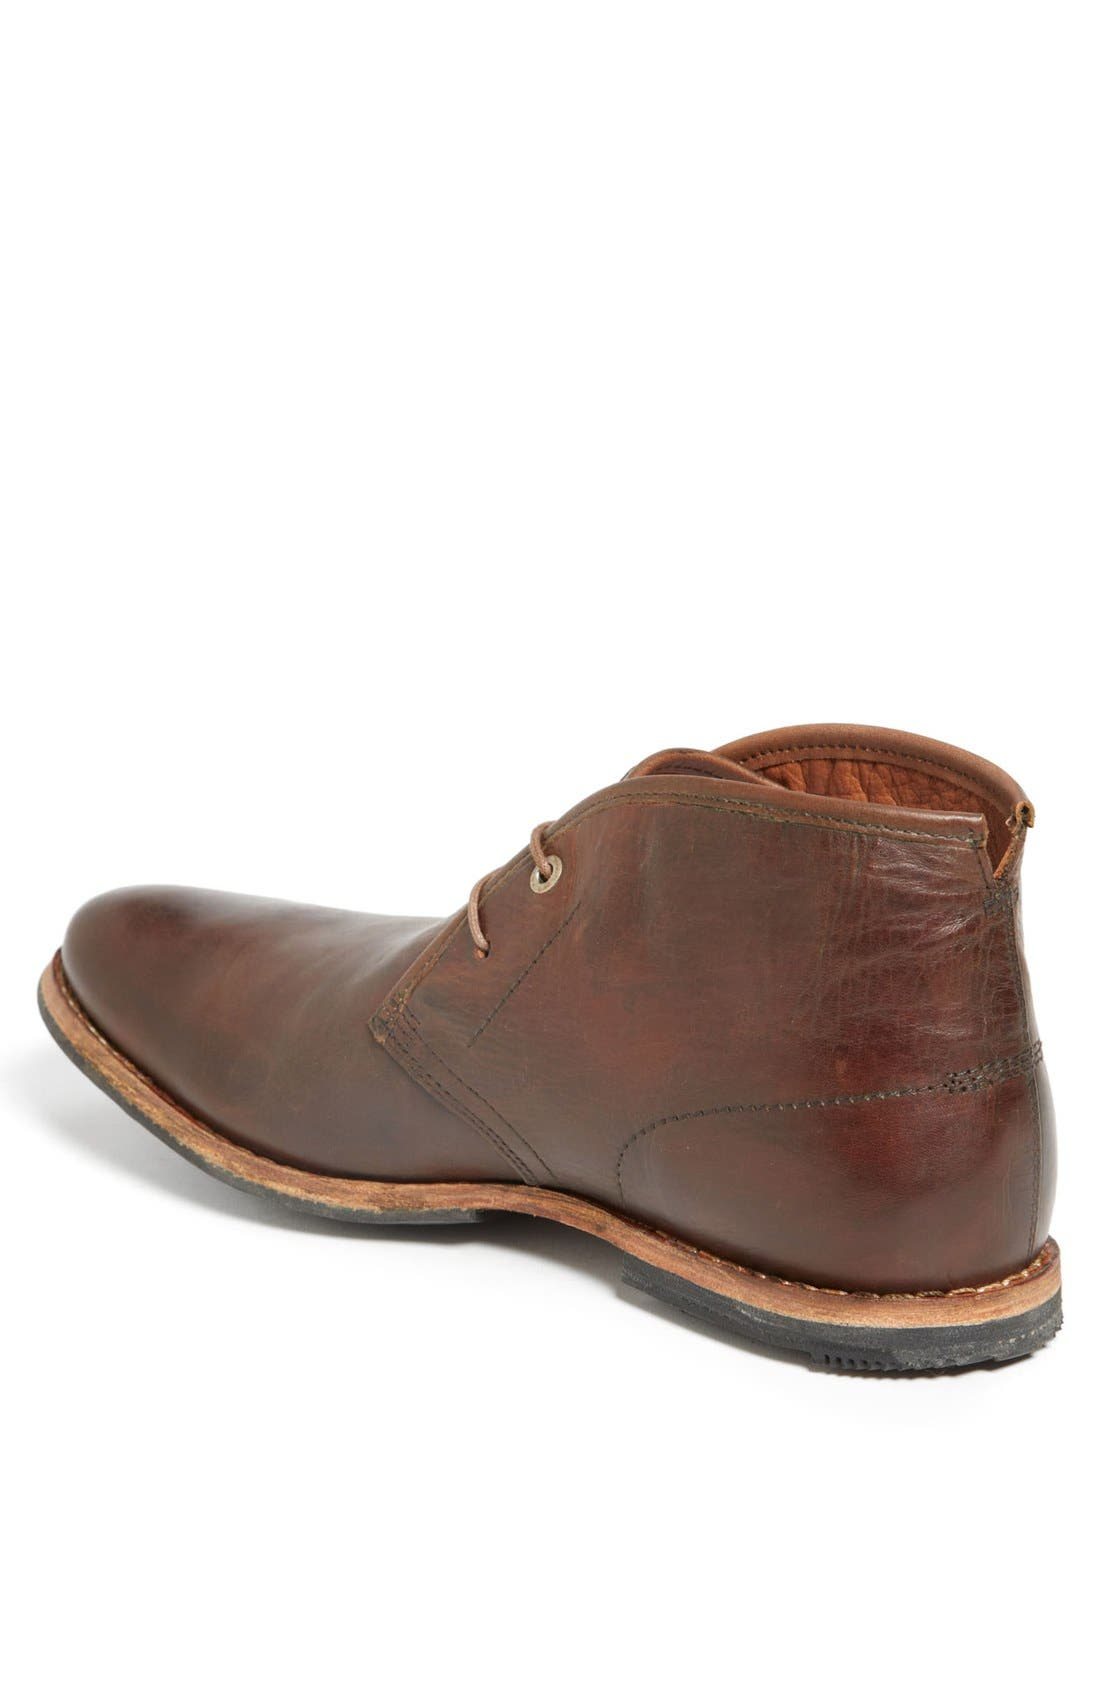 Wodehouse Lost History Chukka Boot,                             Alternate thumbnail 2, color,                             Burnished Dark Brown Leather